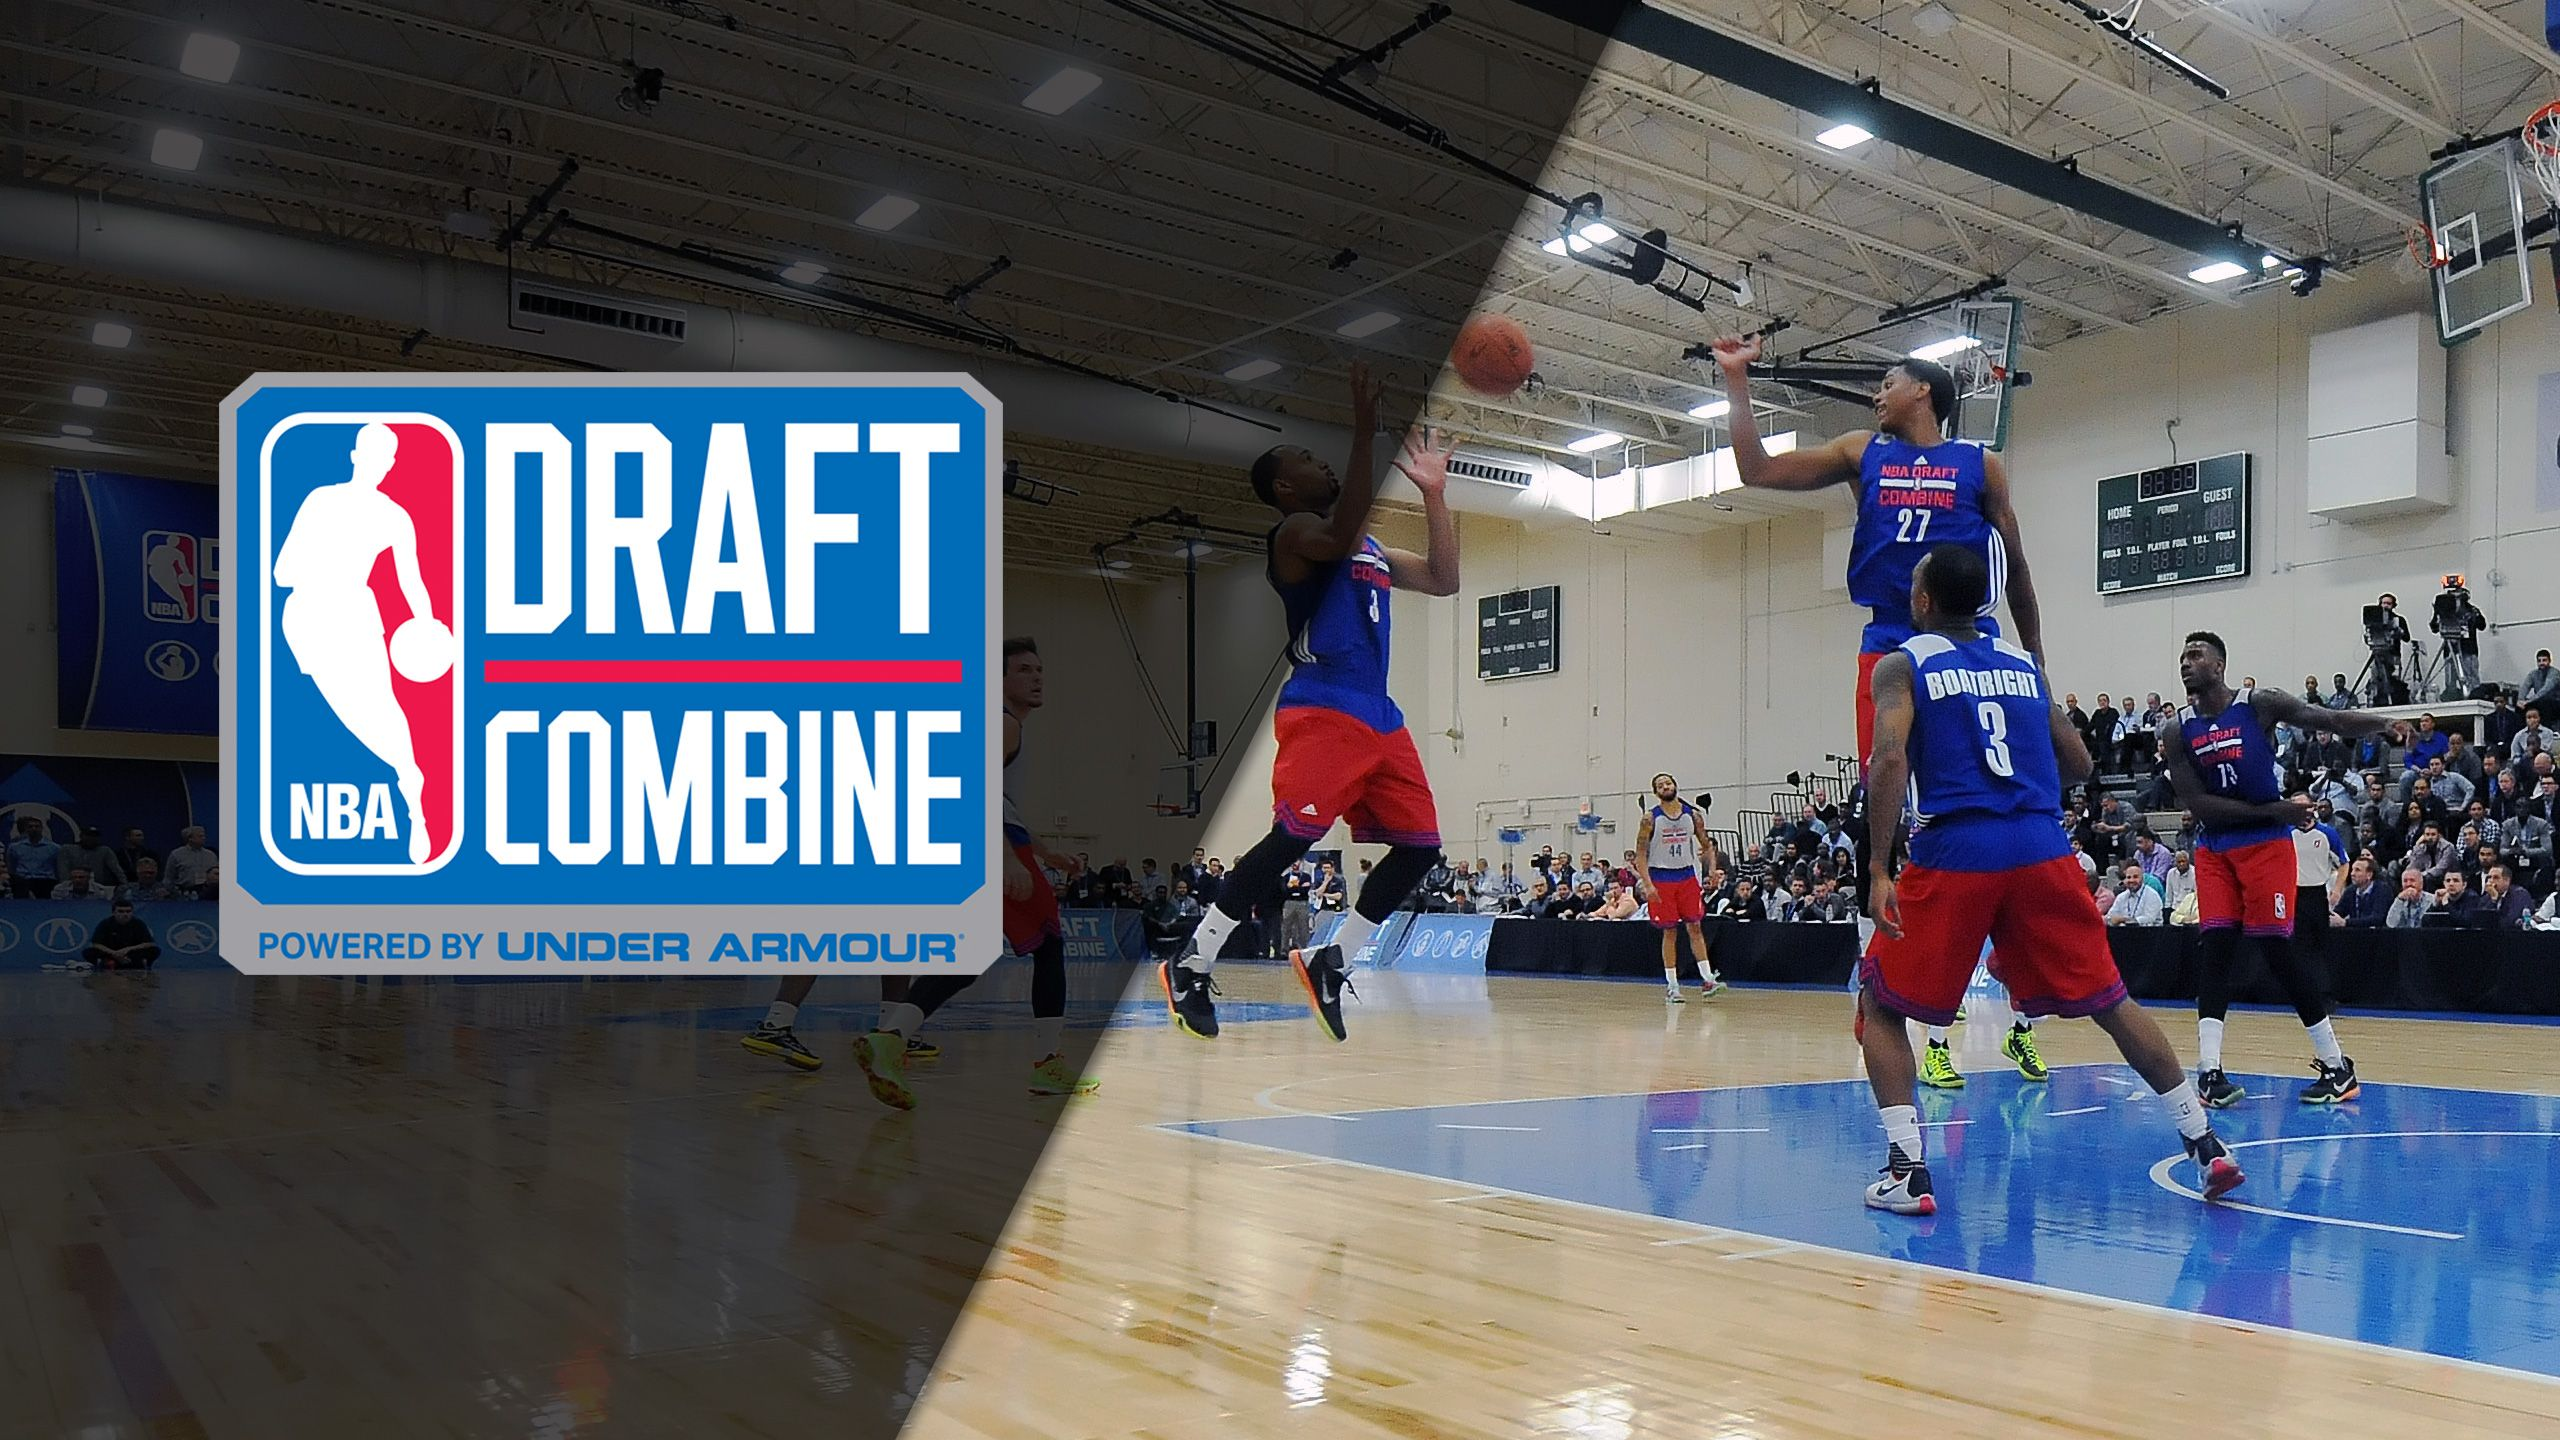 NBA Draft Combine 2018